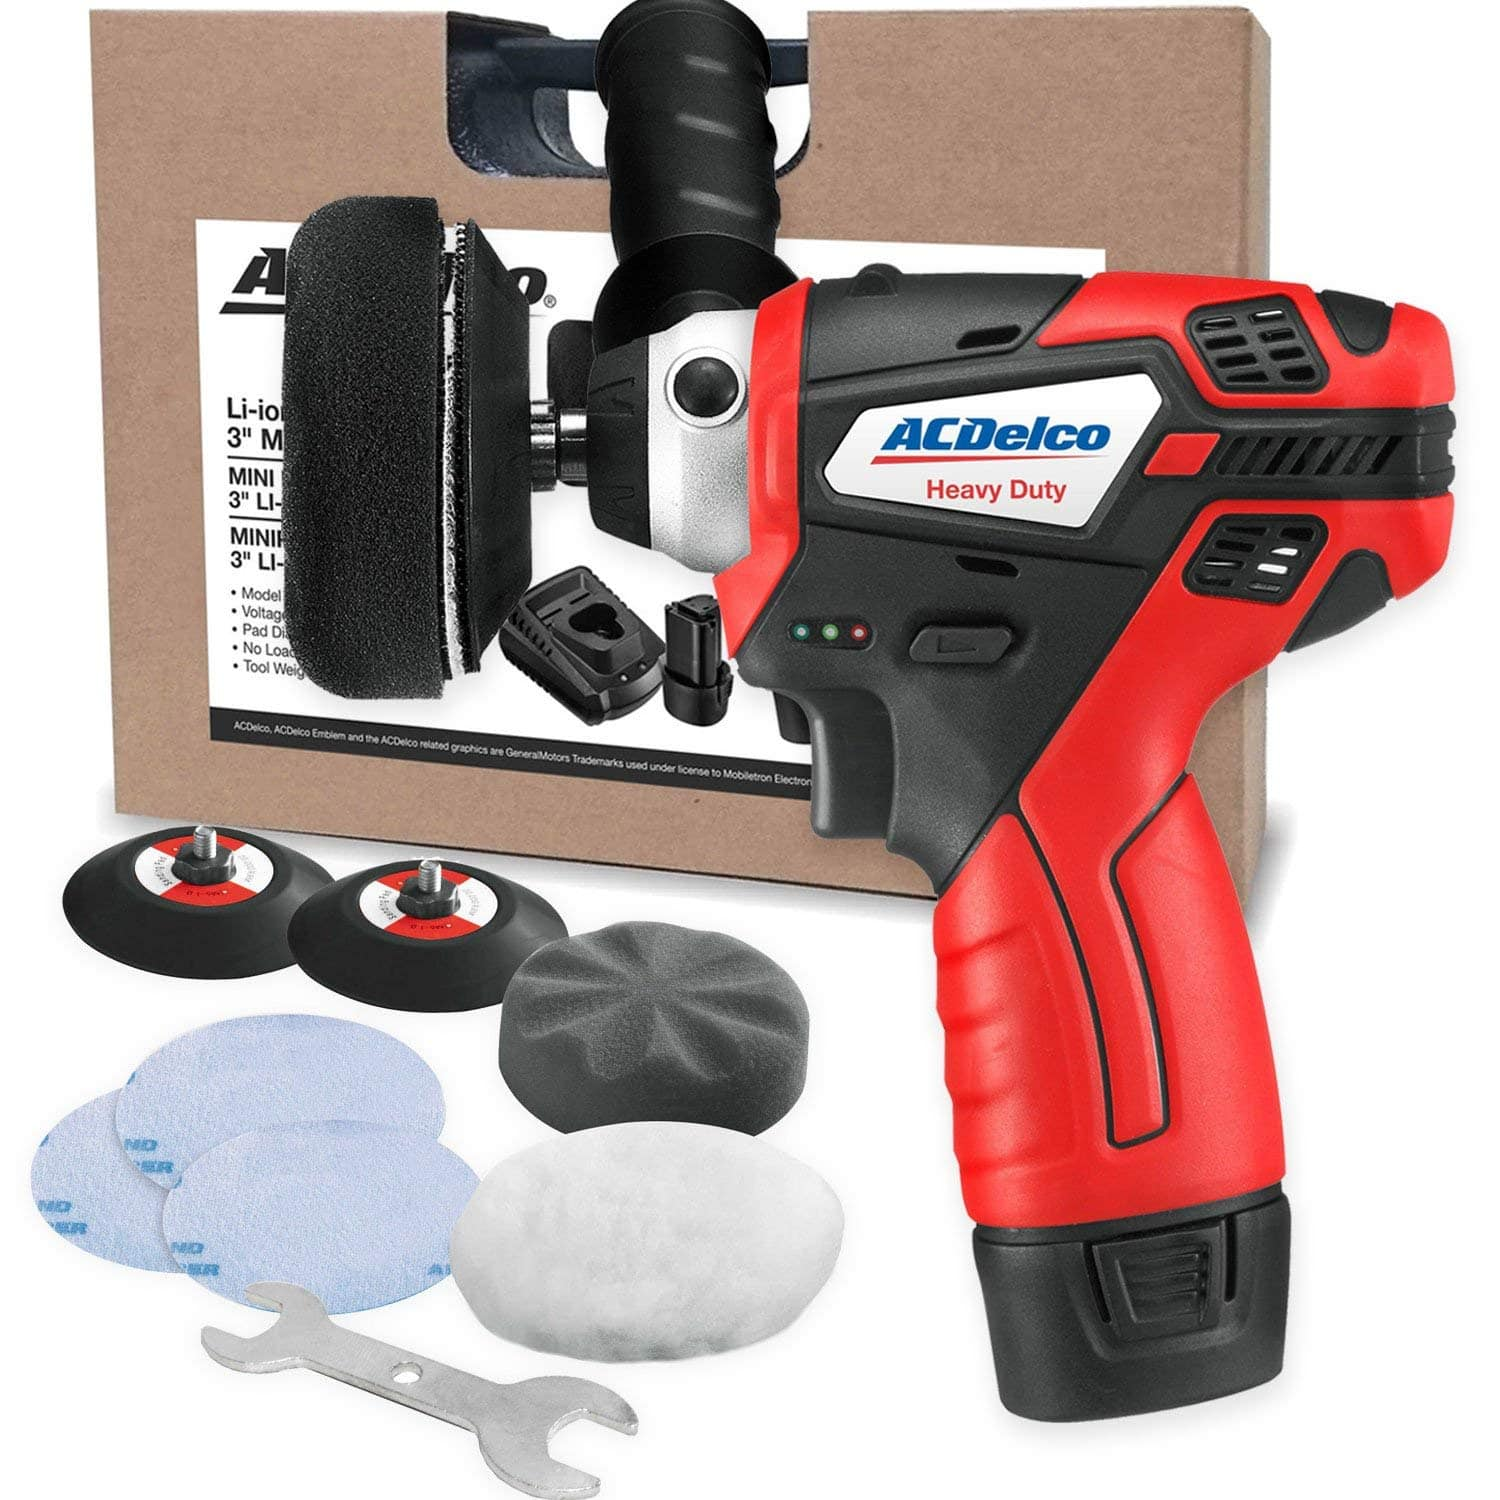 """ACDelco G12 Series 12V Cordless 3"""" Mini Polisher Tool Set with 2 Li-ion Batteries, Charger, and Accessory Kit, ARS1212 $94.84"""